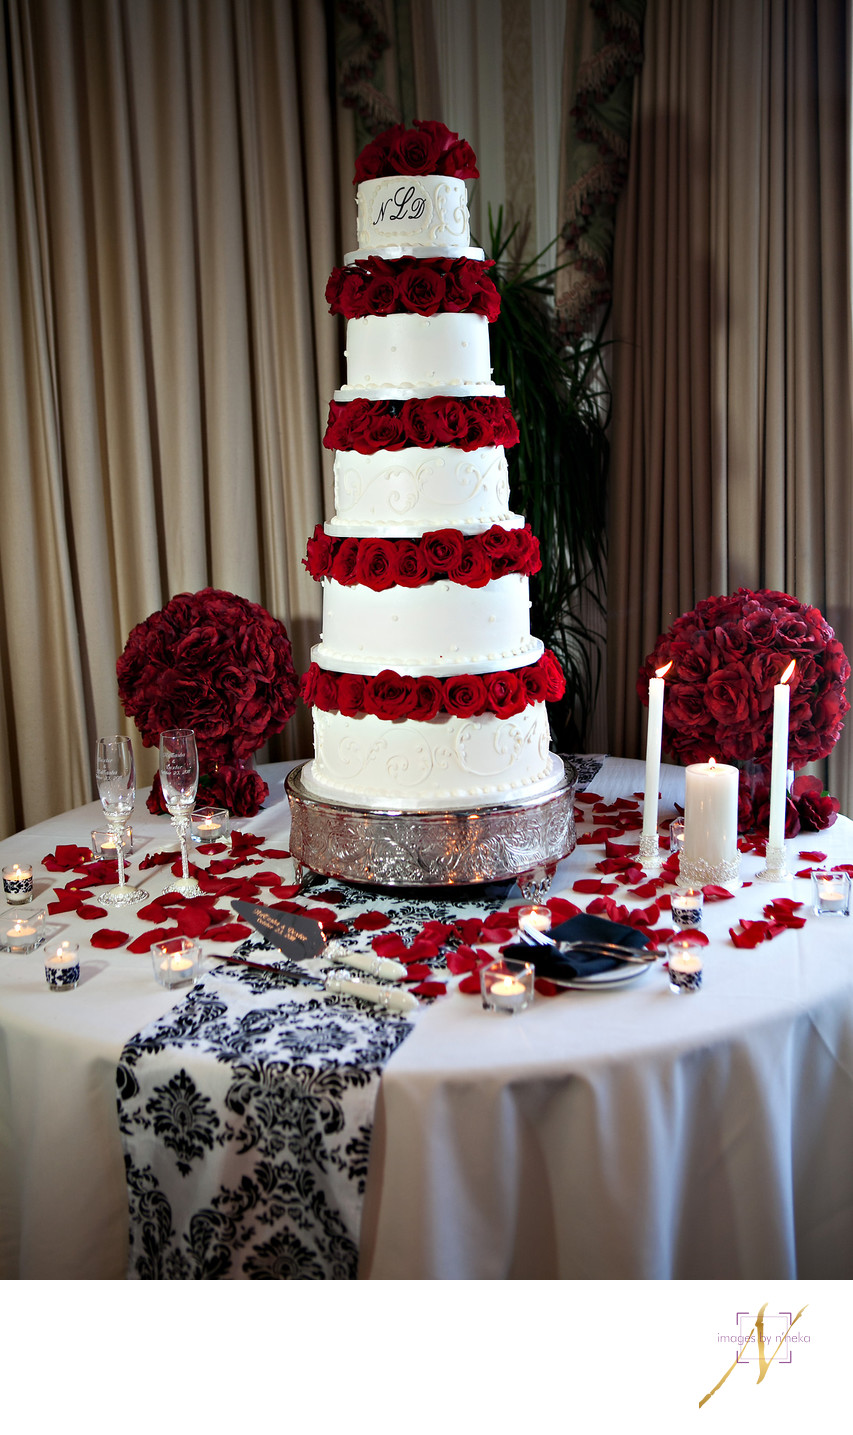 Wedding Cake at Villa Christina